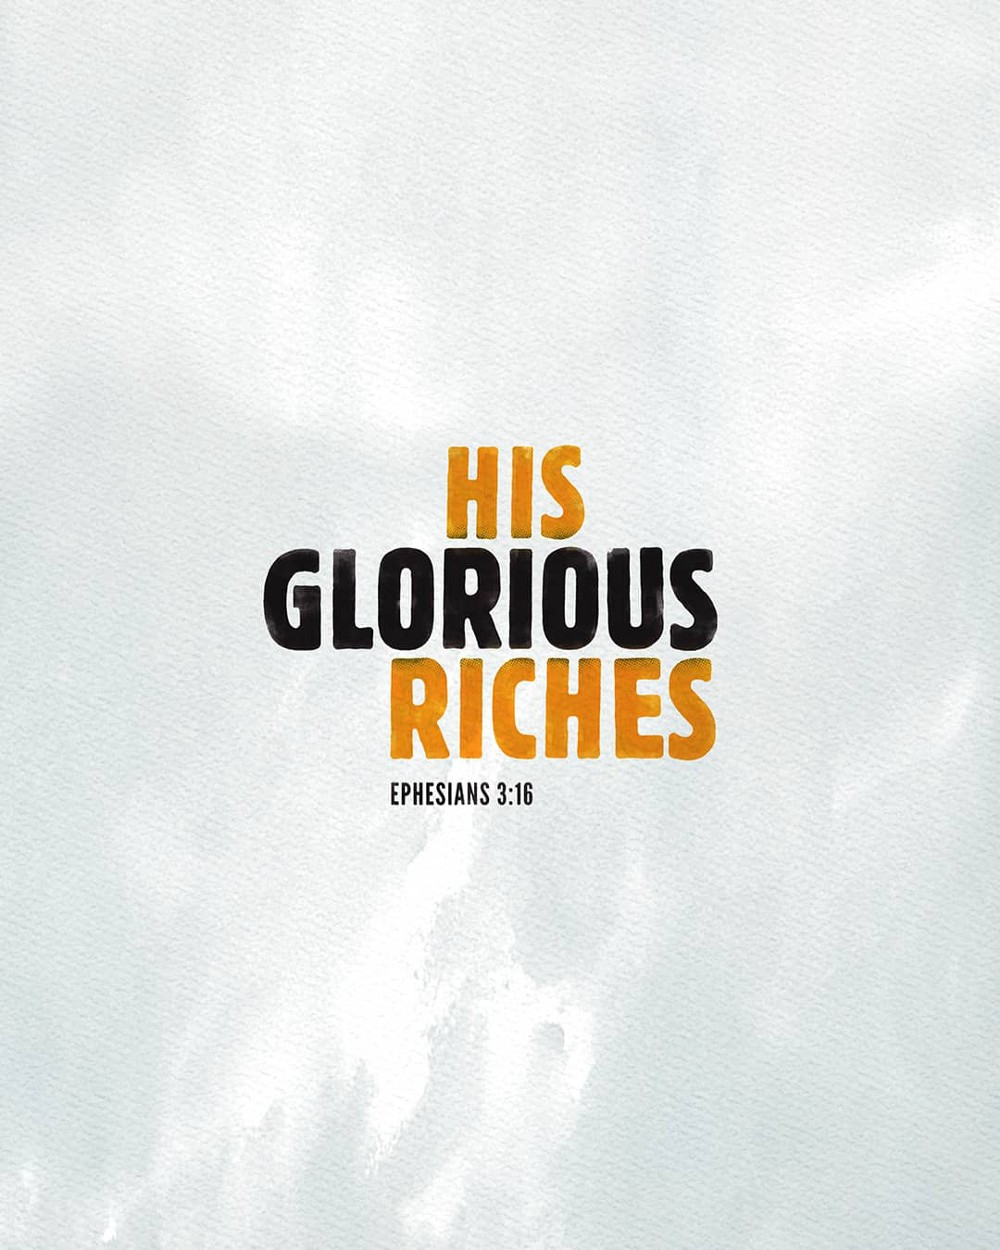 His glorious riches | Small Voice Today